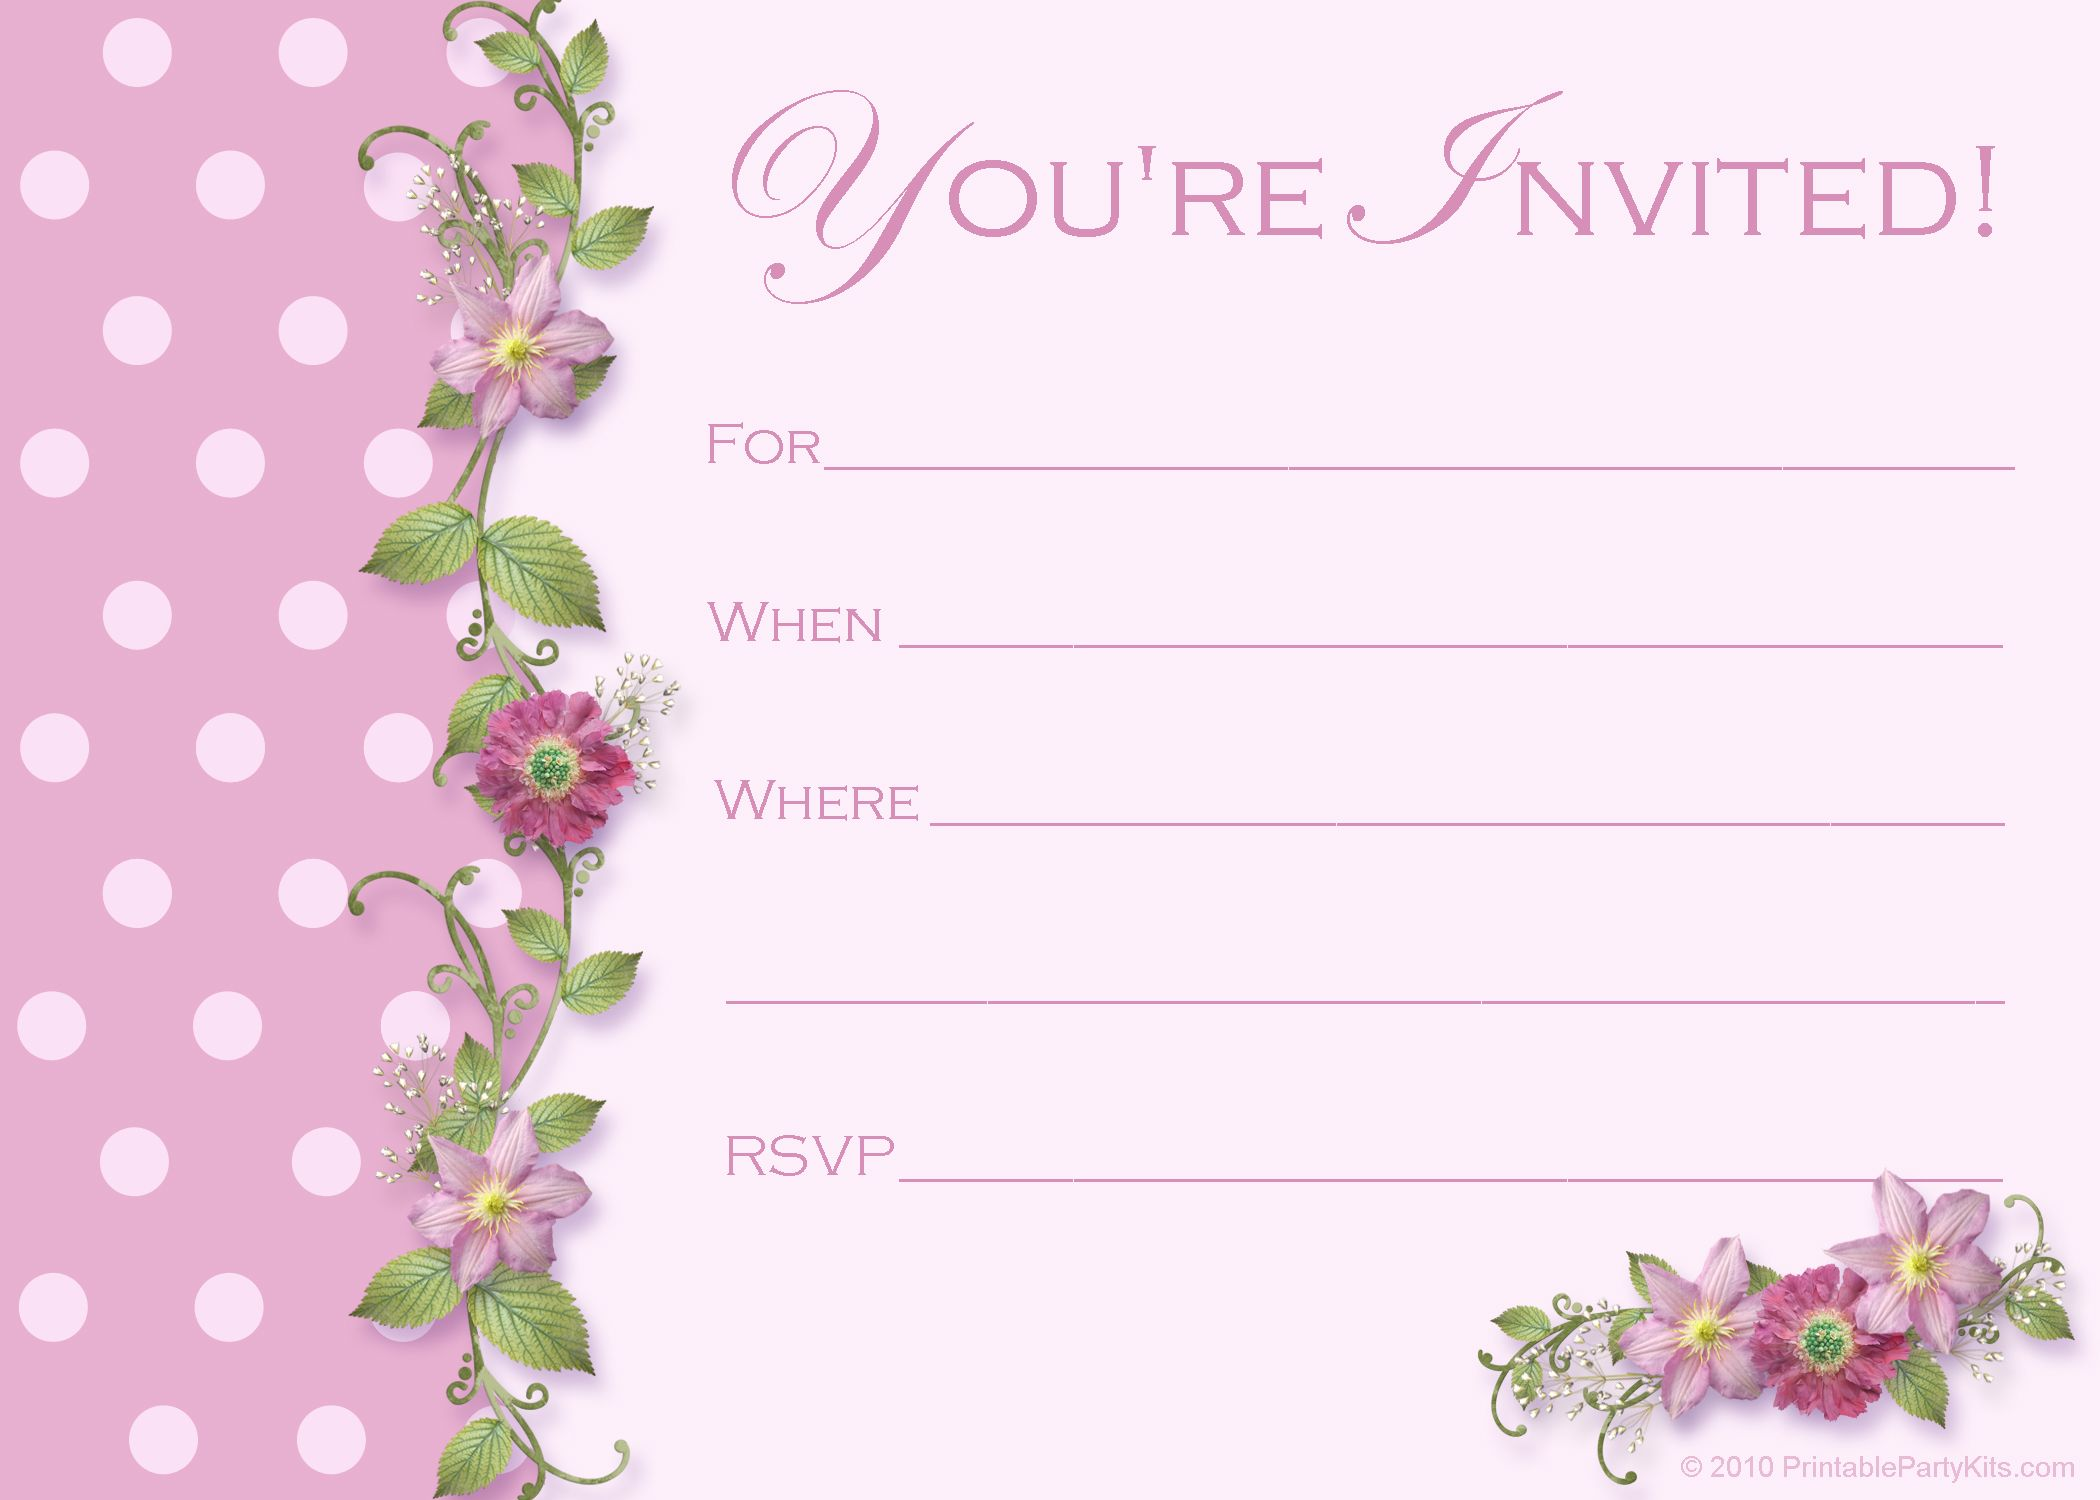 Get FREE Sweet 5 Birthday Invitations  Free birthday invitations